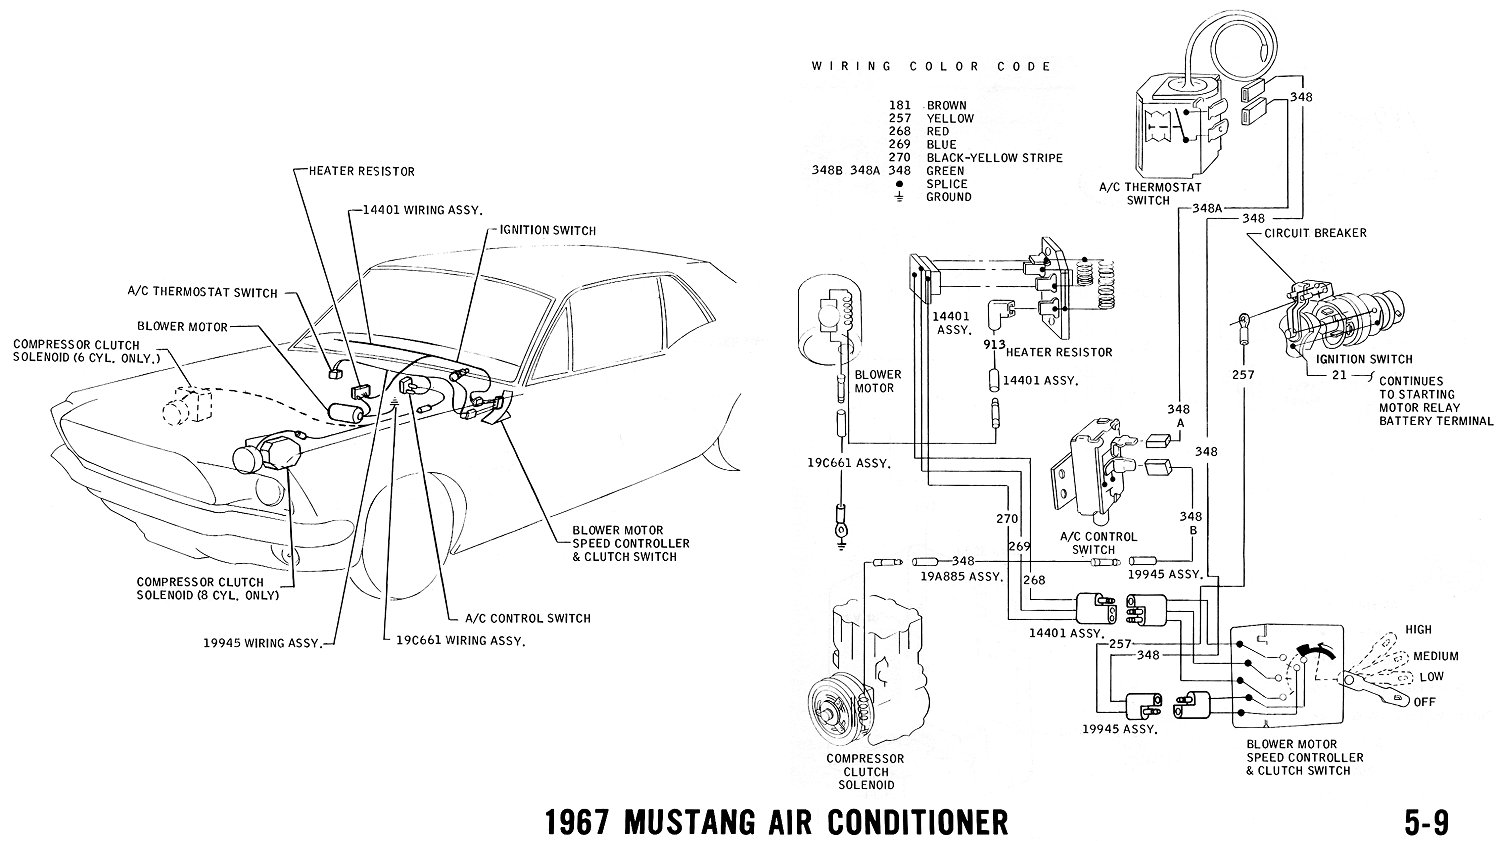 67ac 2012 mustang wiring diagram 2010 flex wiring diagram \u2022 wiring  at webbmarketing.co